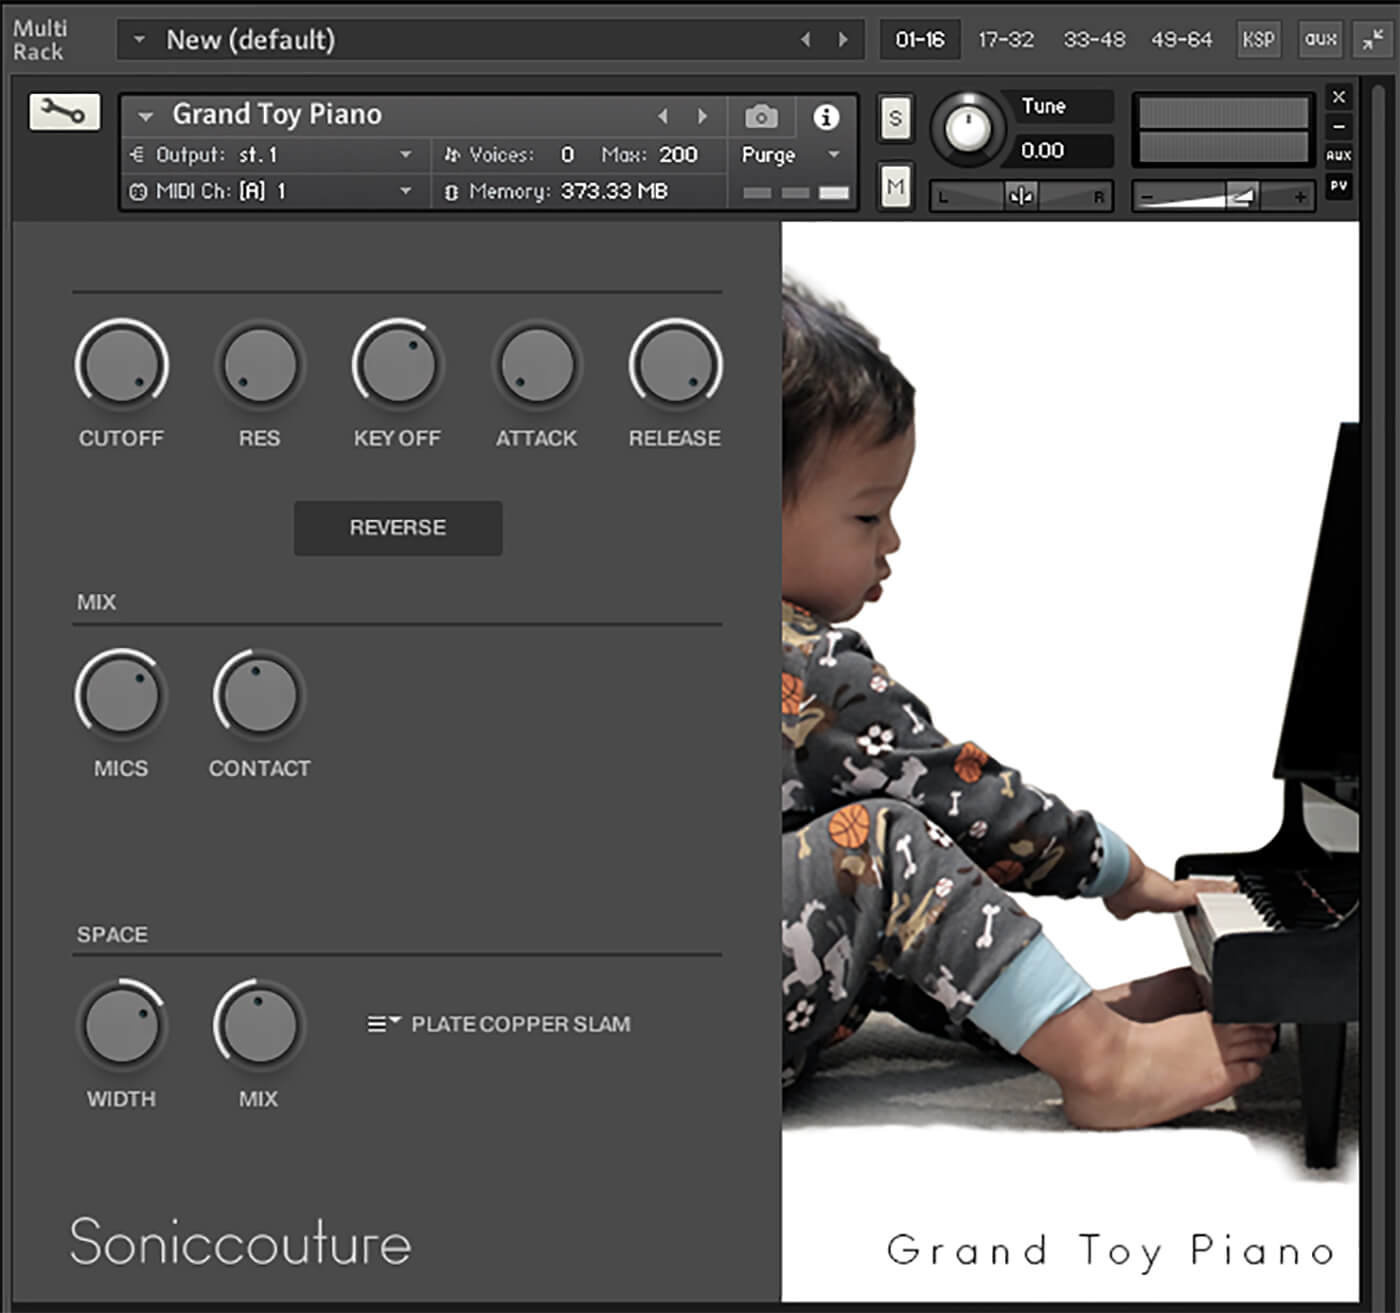 Soniccouture Toy Pianos